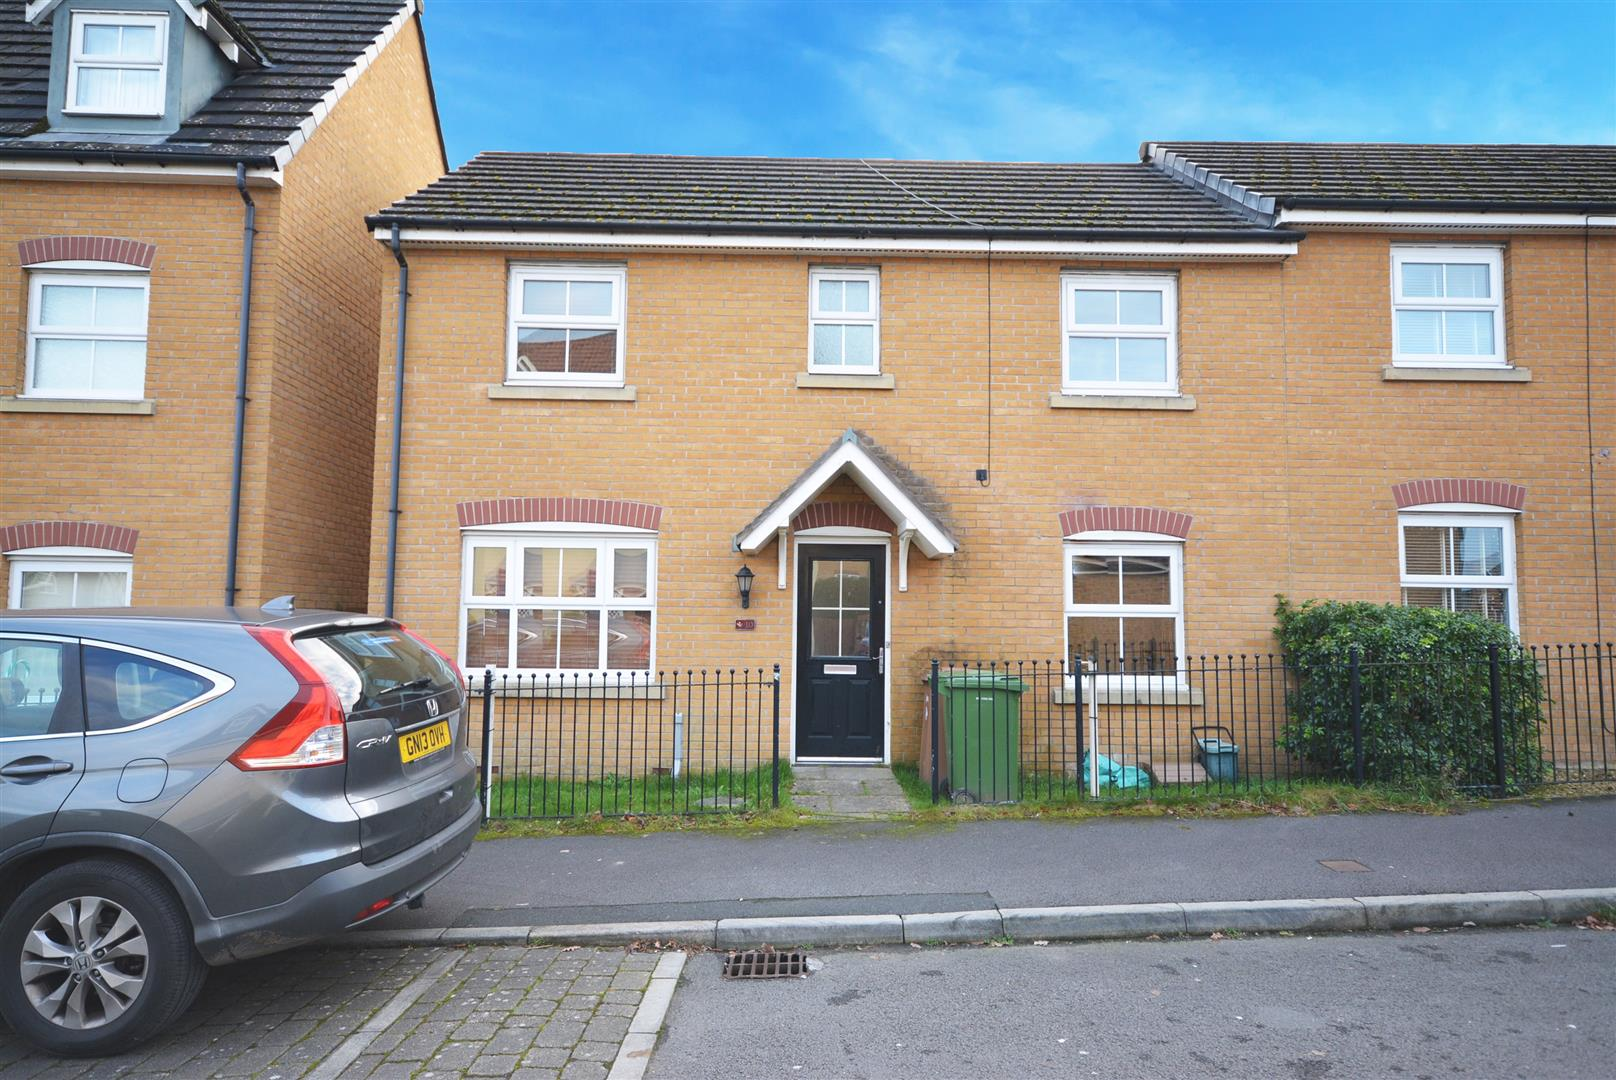 3 bed semi-detached house for sale in Red Kite Close, Hengoed 0